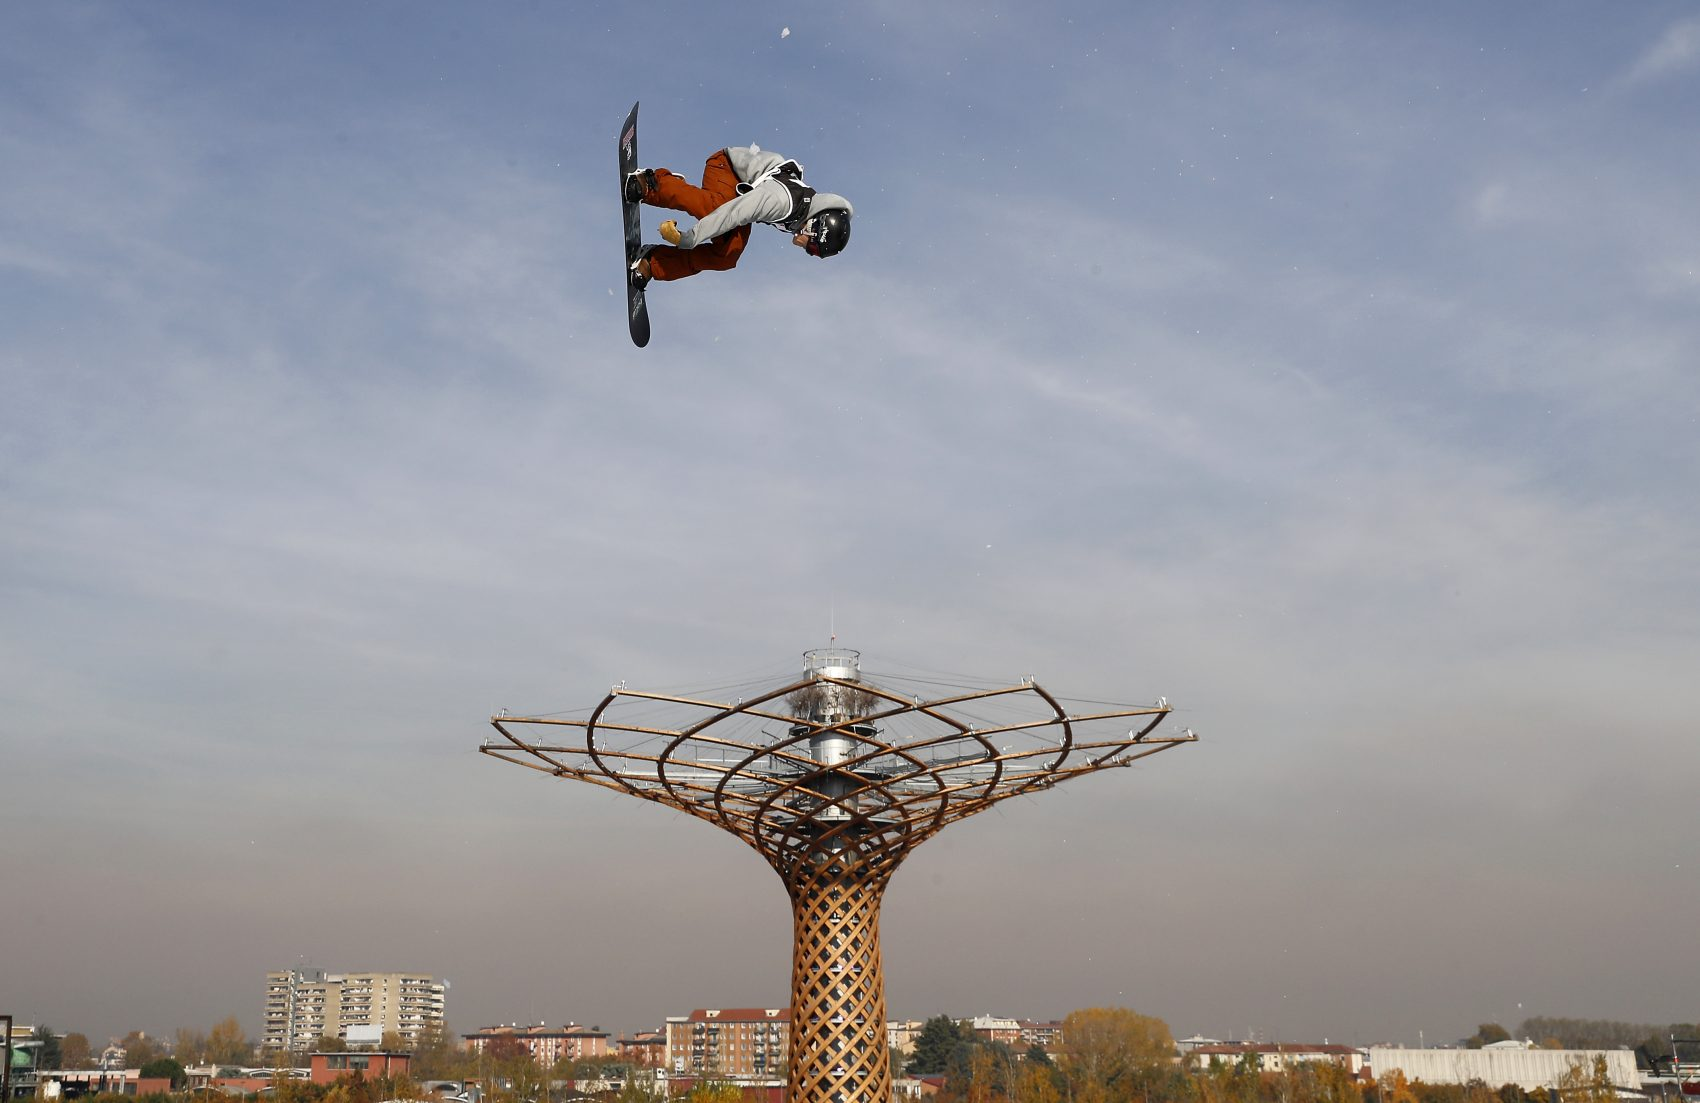 Ryan Stassel, of the United States soars through the air during the snowboard men's World Cup big air event, in Rho, near Milan, Italy, Saturday, Nov. 11, 2017. (Antonio Calanni/AP)